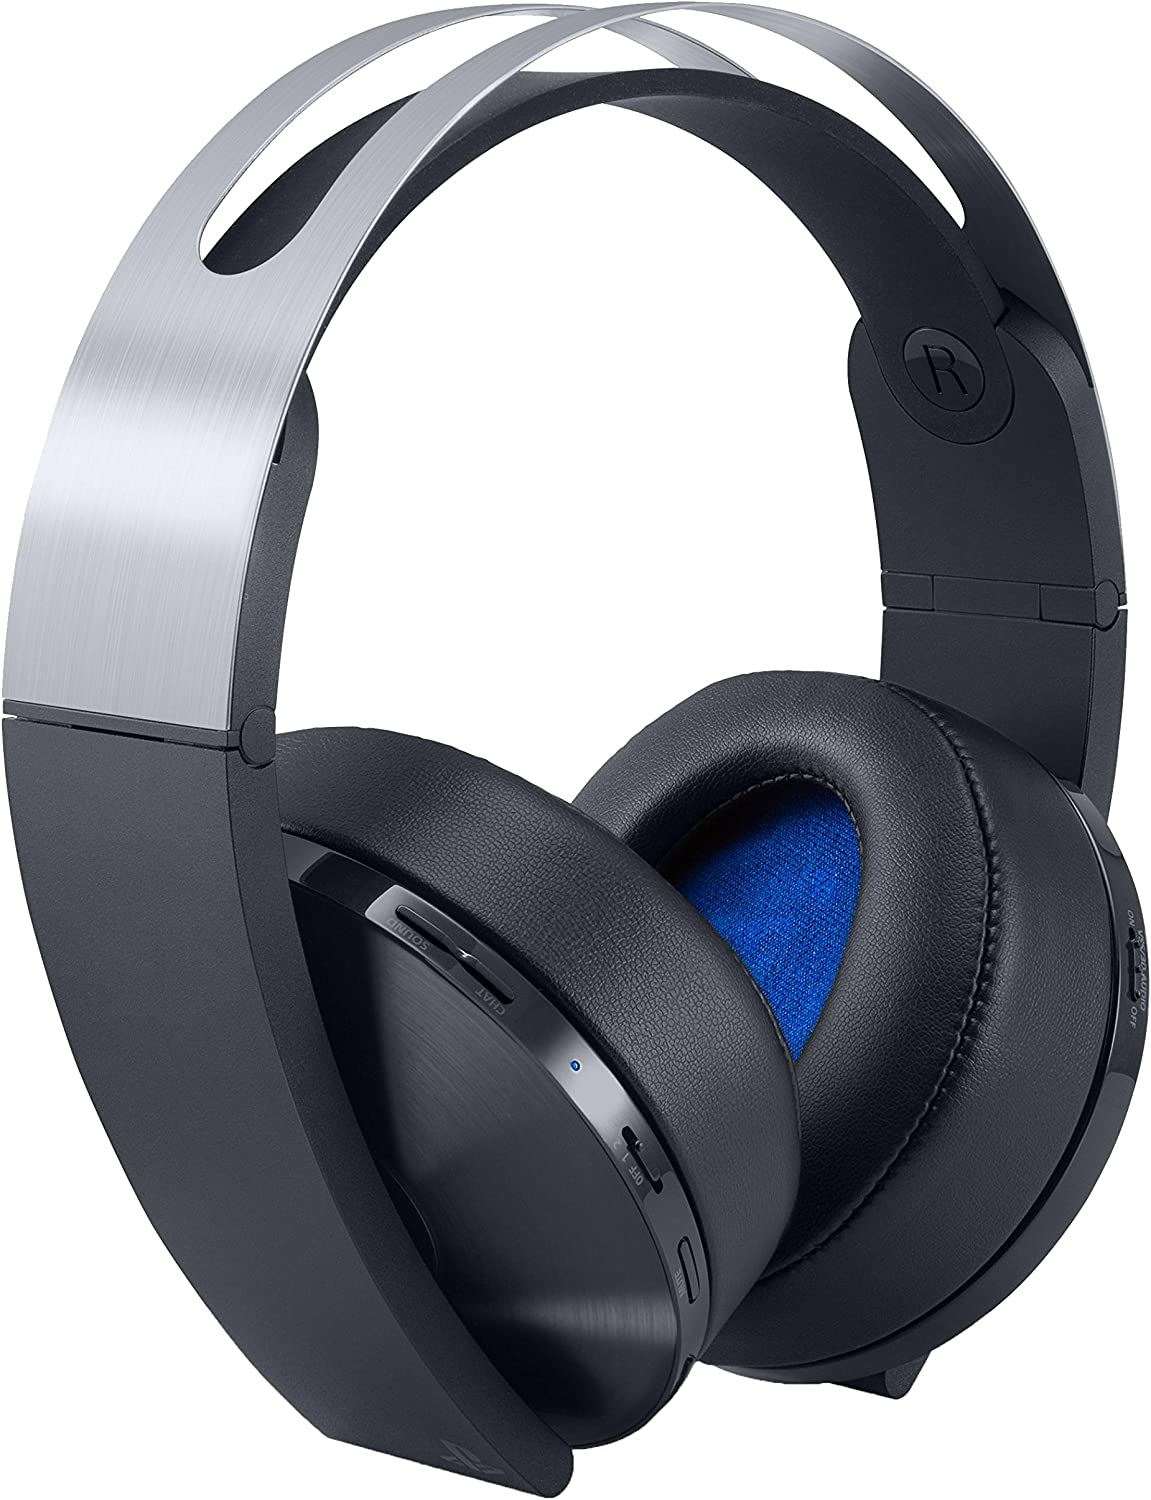 Top 5 PS4 headsets